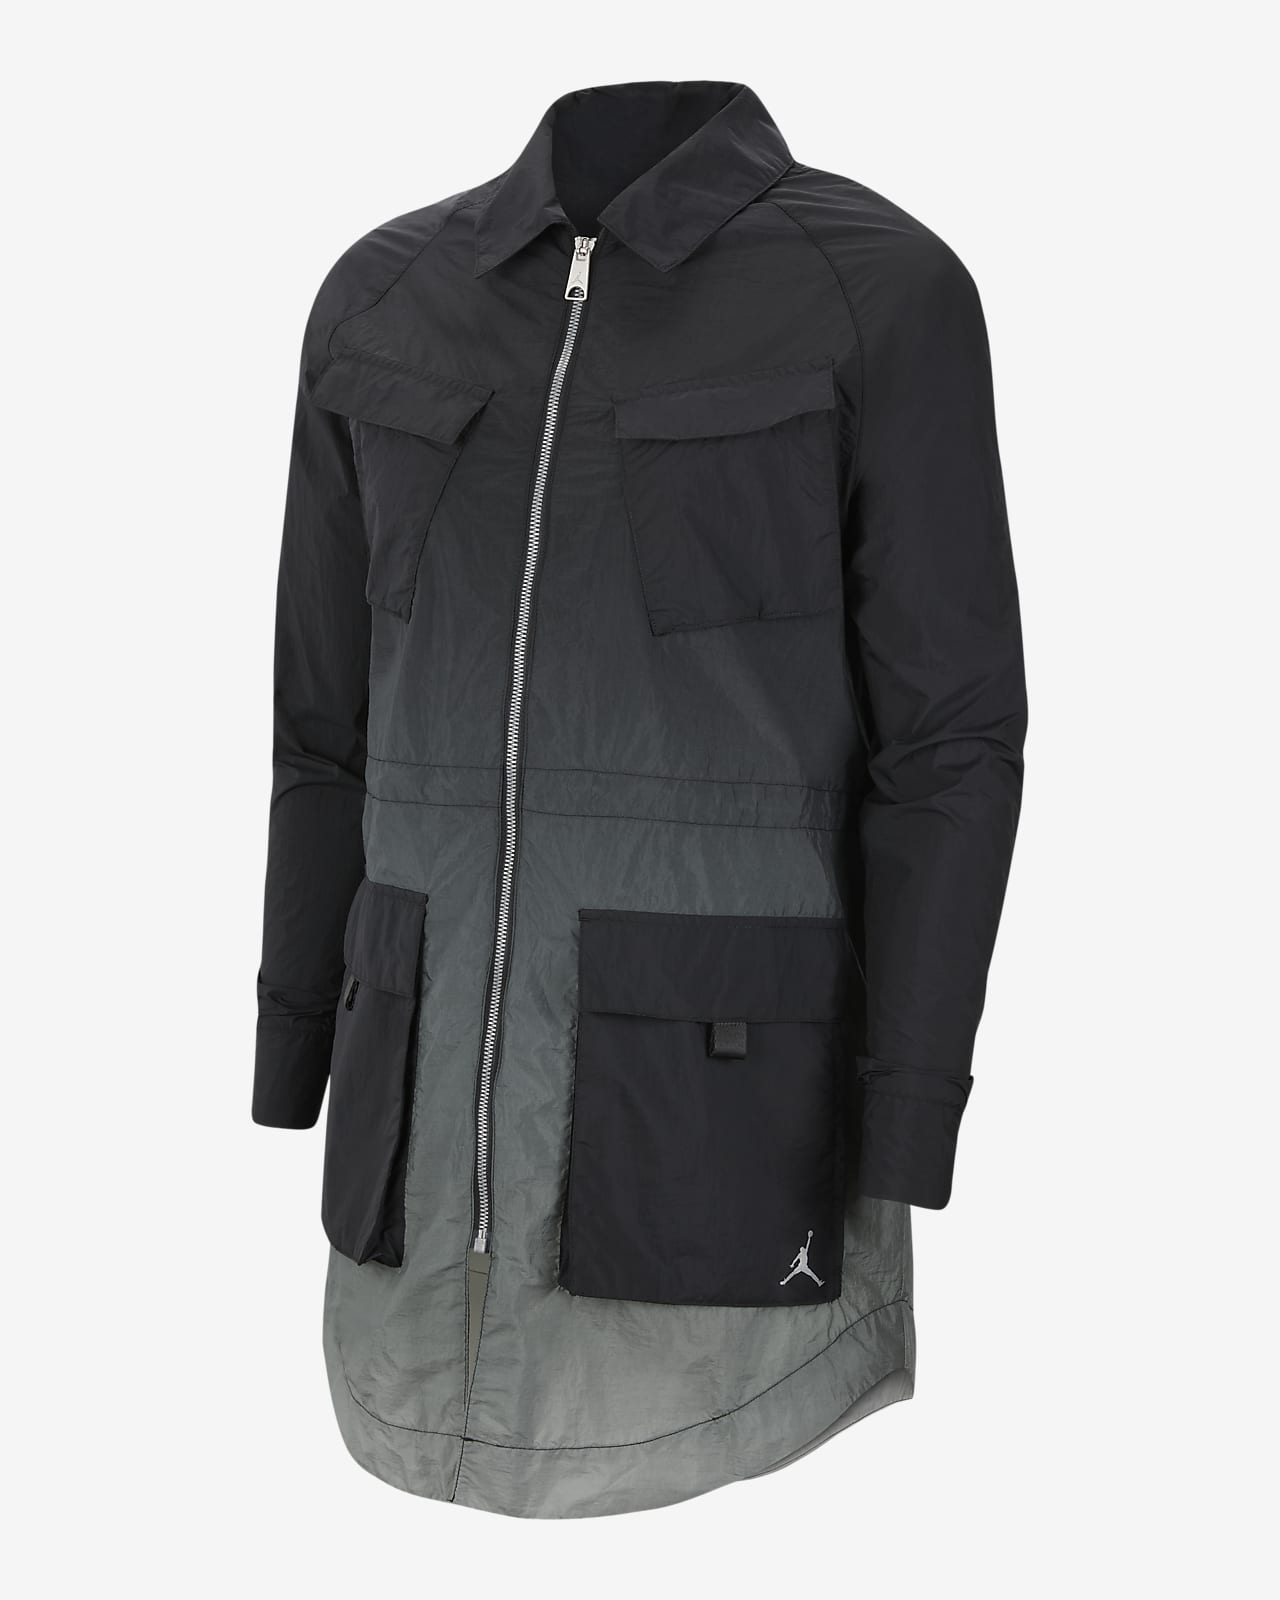 Jordan Women's Windbreaker